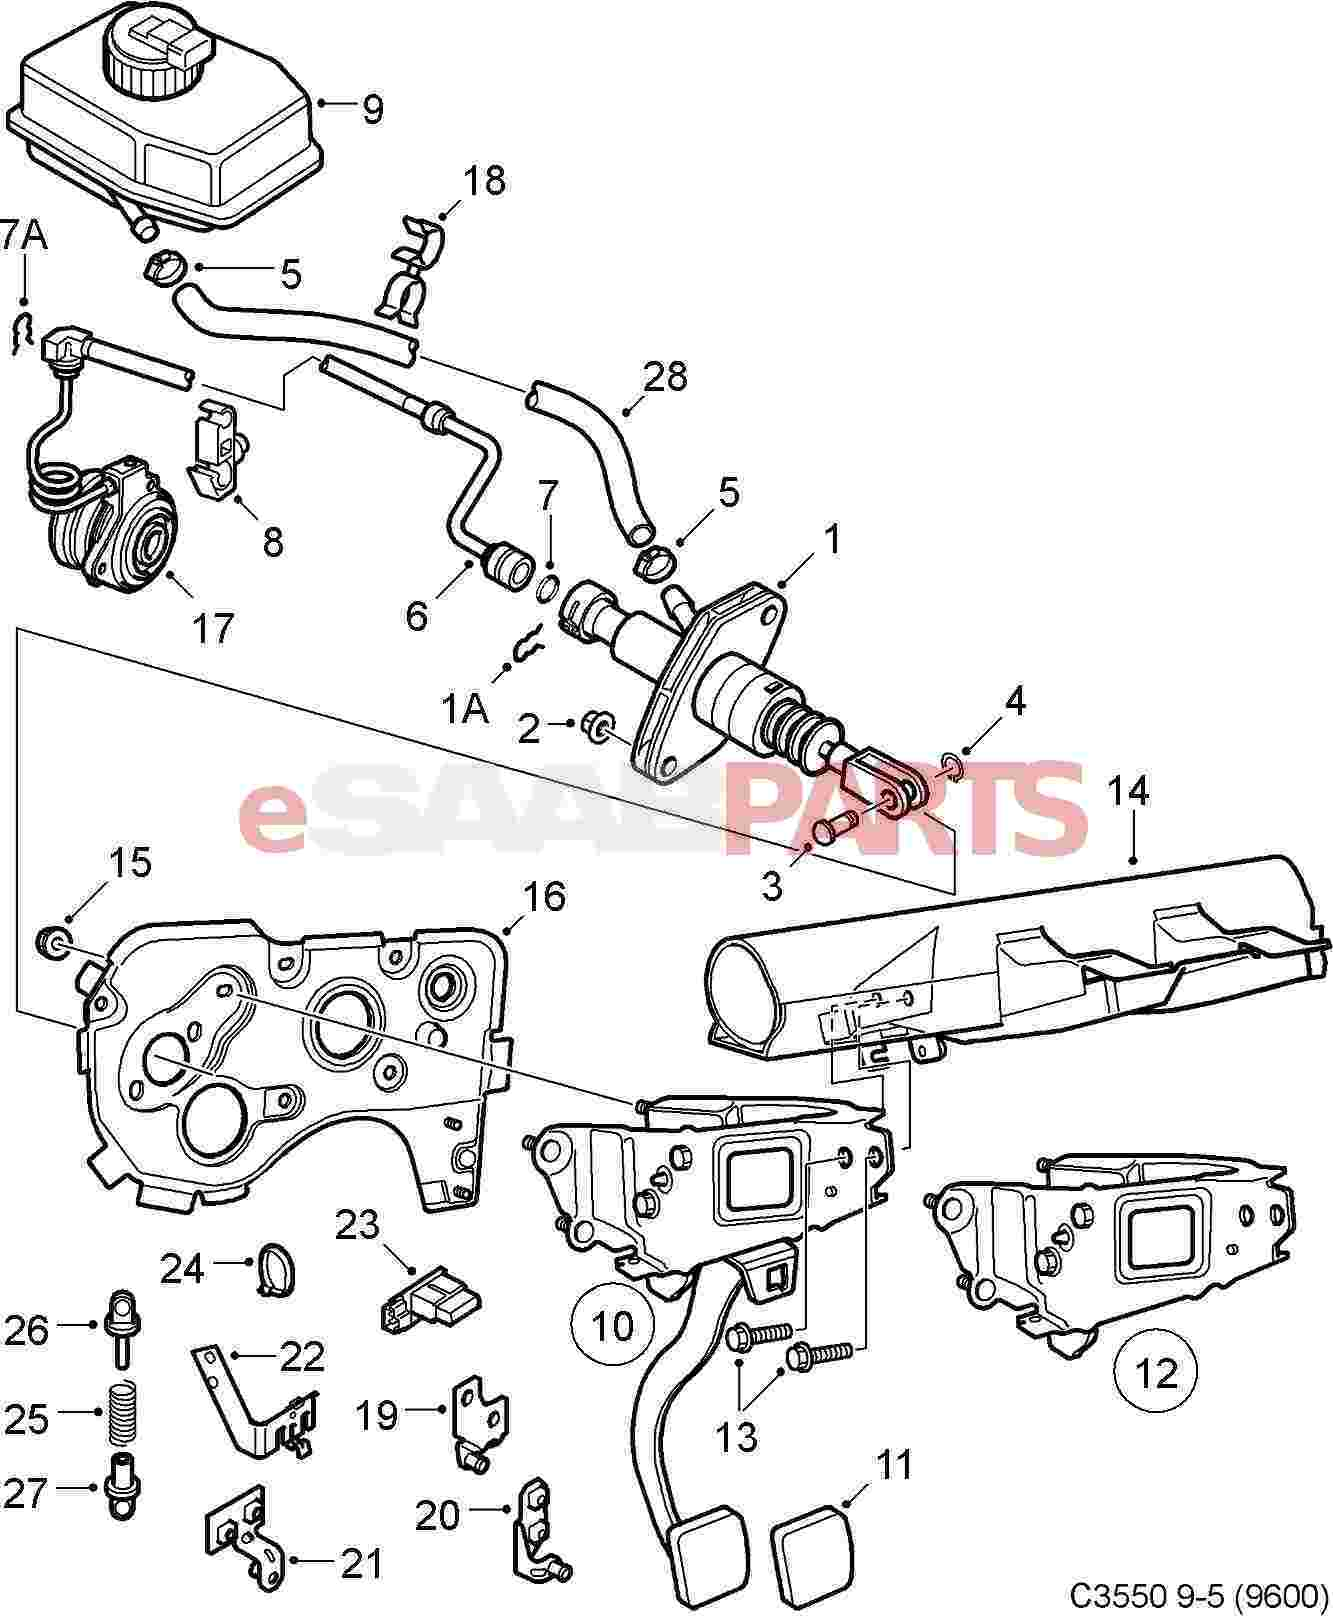 Parts.com® | Saab SEATS AND TRACKS FRONT SEAT COMPONENTS SEAT BACK ...